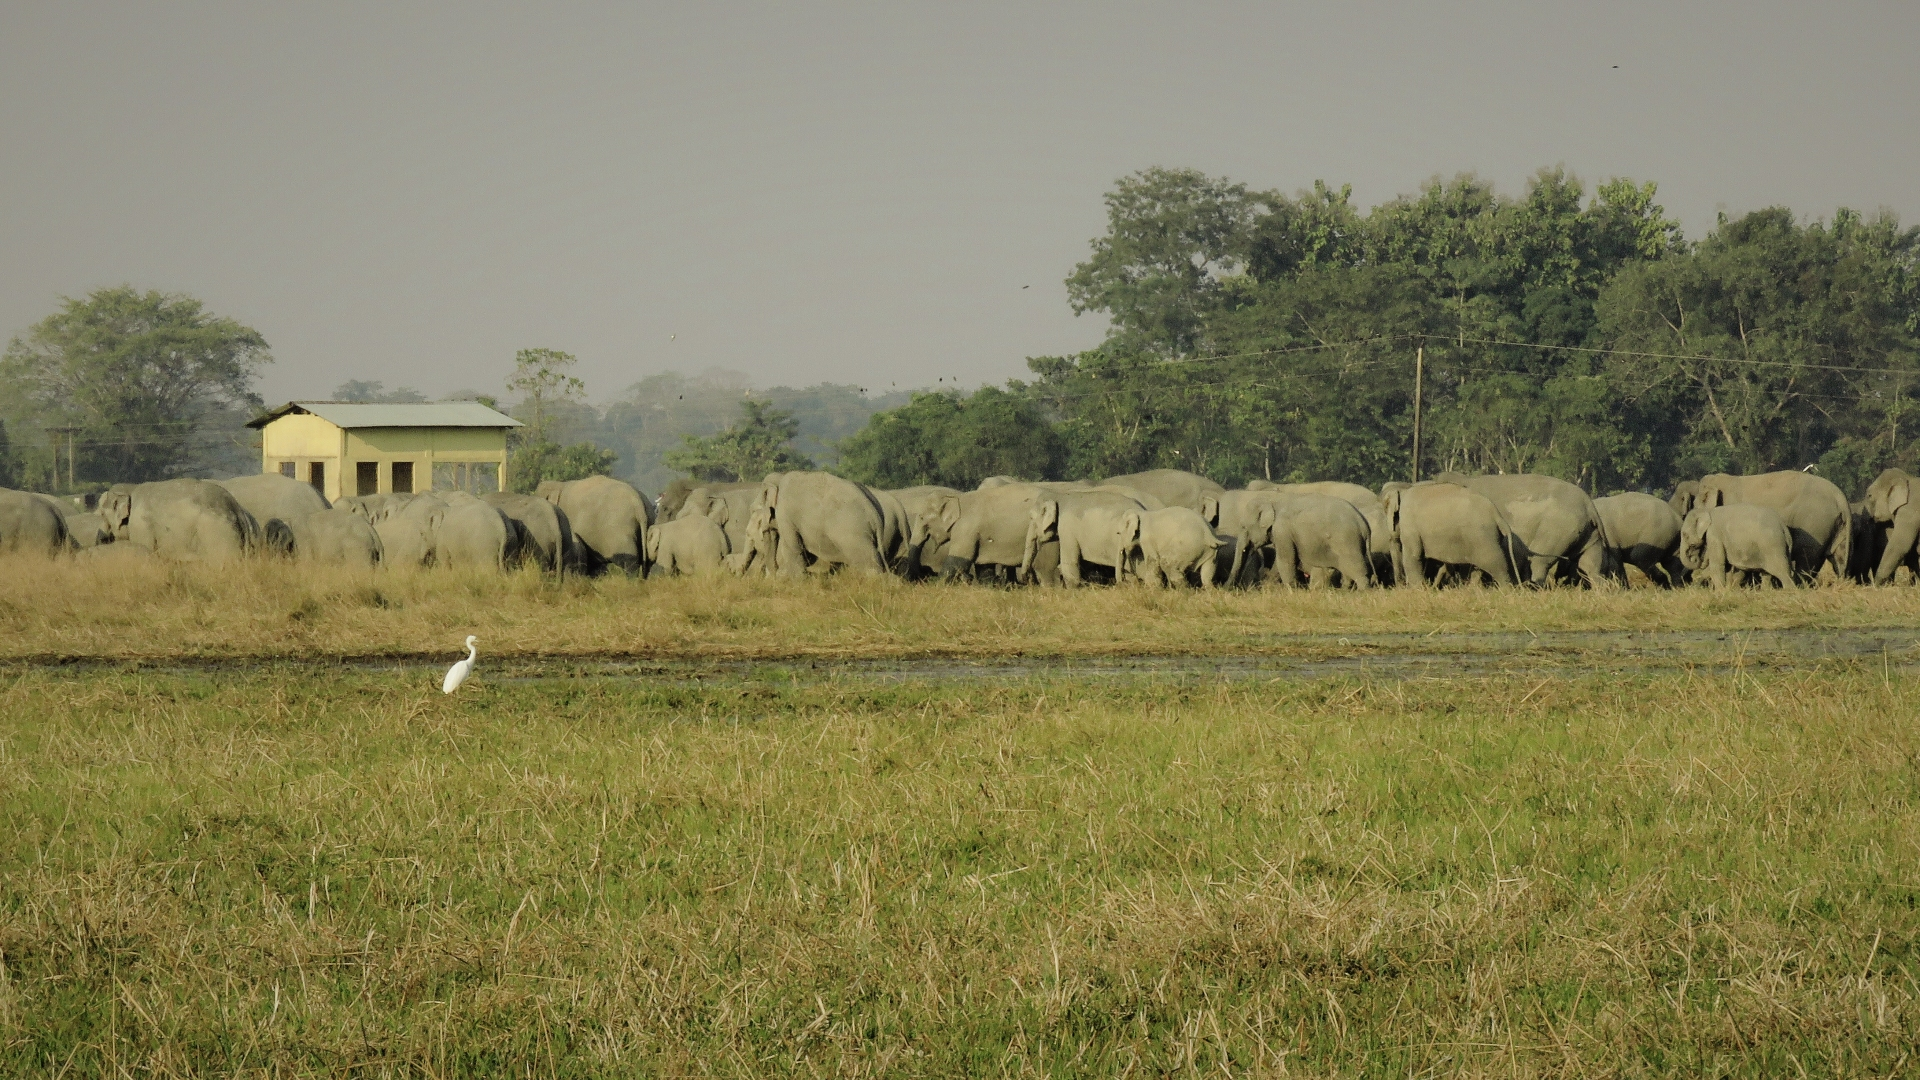 An elephant herd walks through a village in Assam's Sonitpur district. According to news reports, since the early 2000s an estimated 60 per cent of elephants in and around the district have died, many from intentional poisoning. 